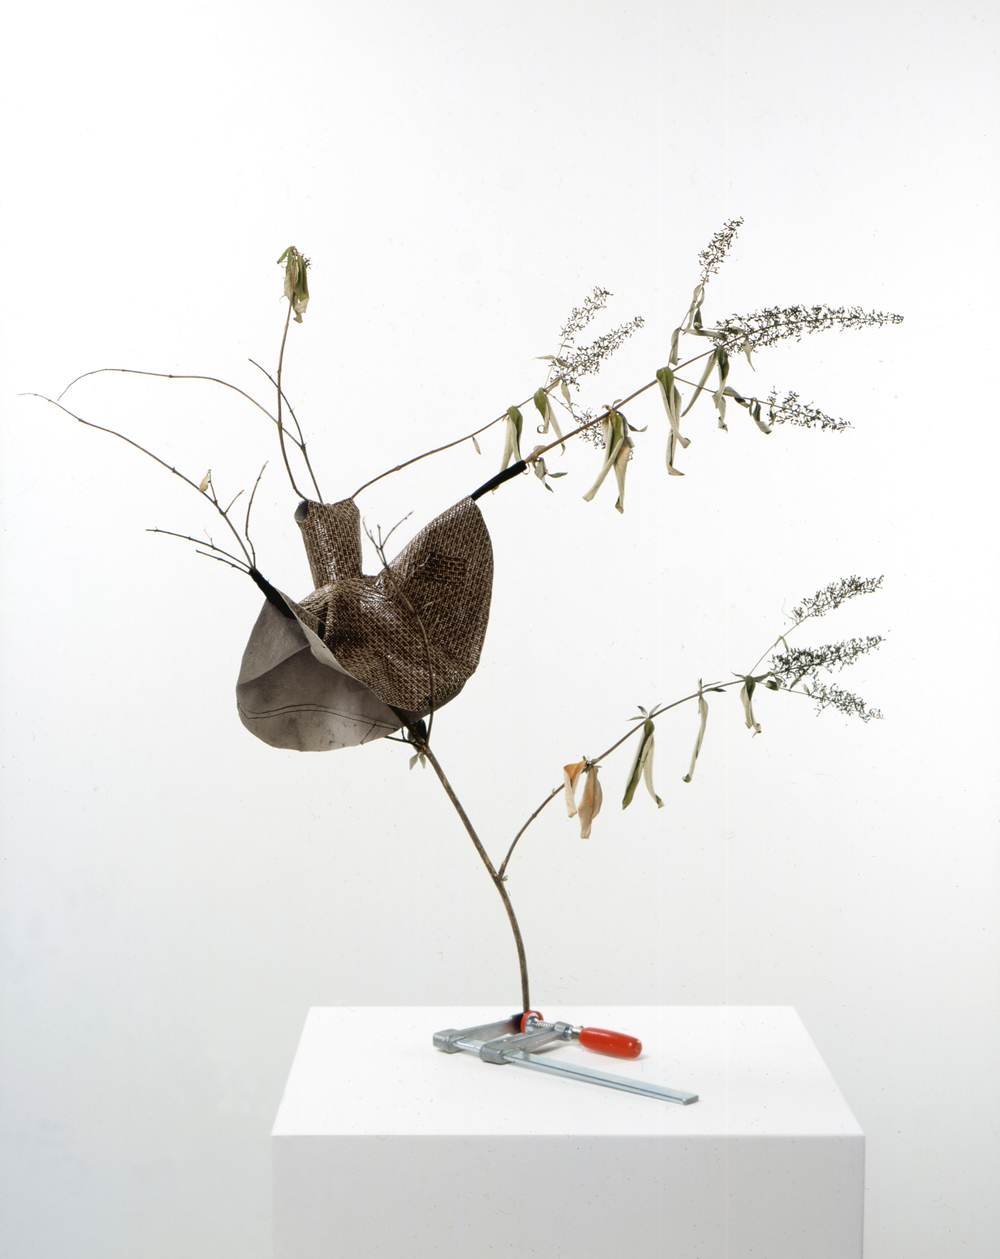 Dancer 2005 dried Buddleia, clamp, leather & fabric 78cm x 59cm x 86cm